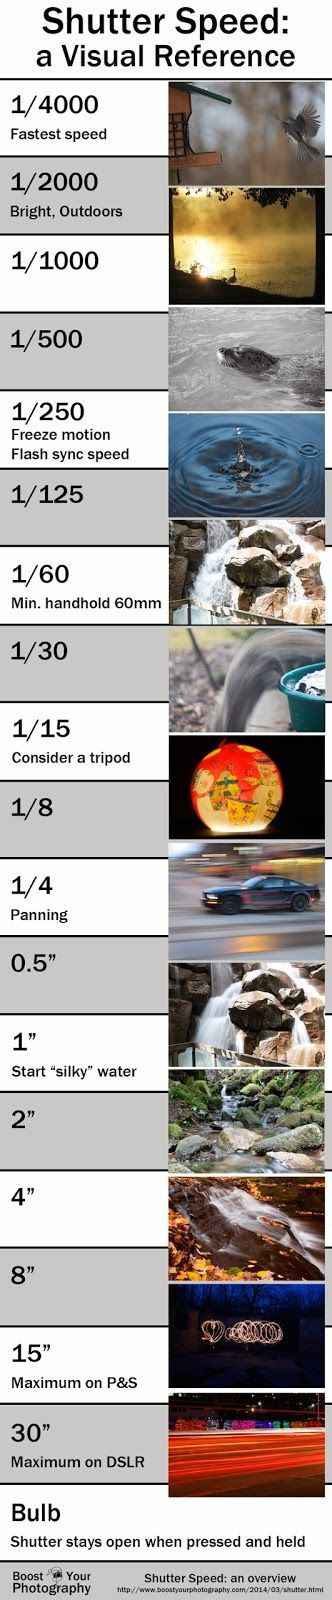 Shutter Speed: an overview | Boost Your Photography Photography Tips, #photography photo editing